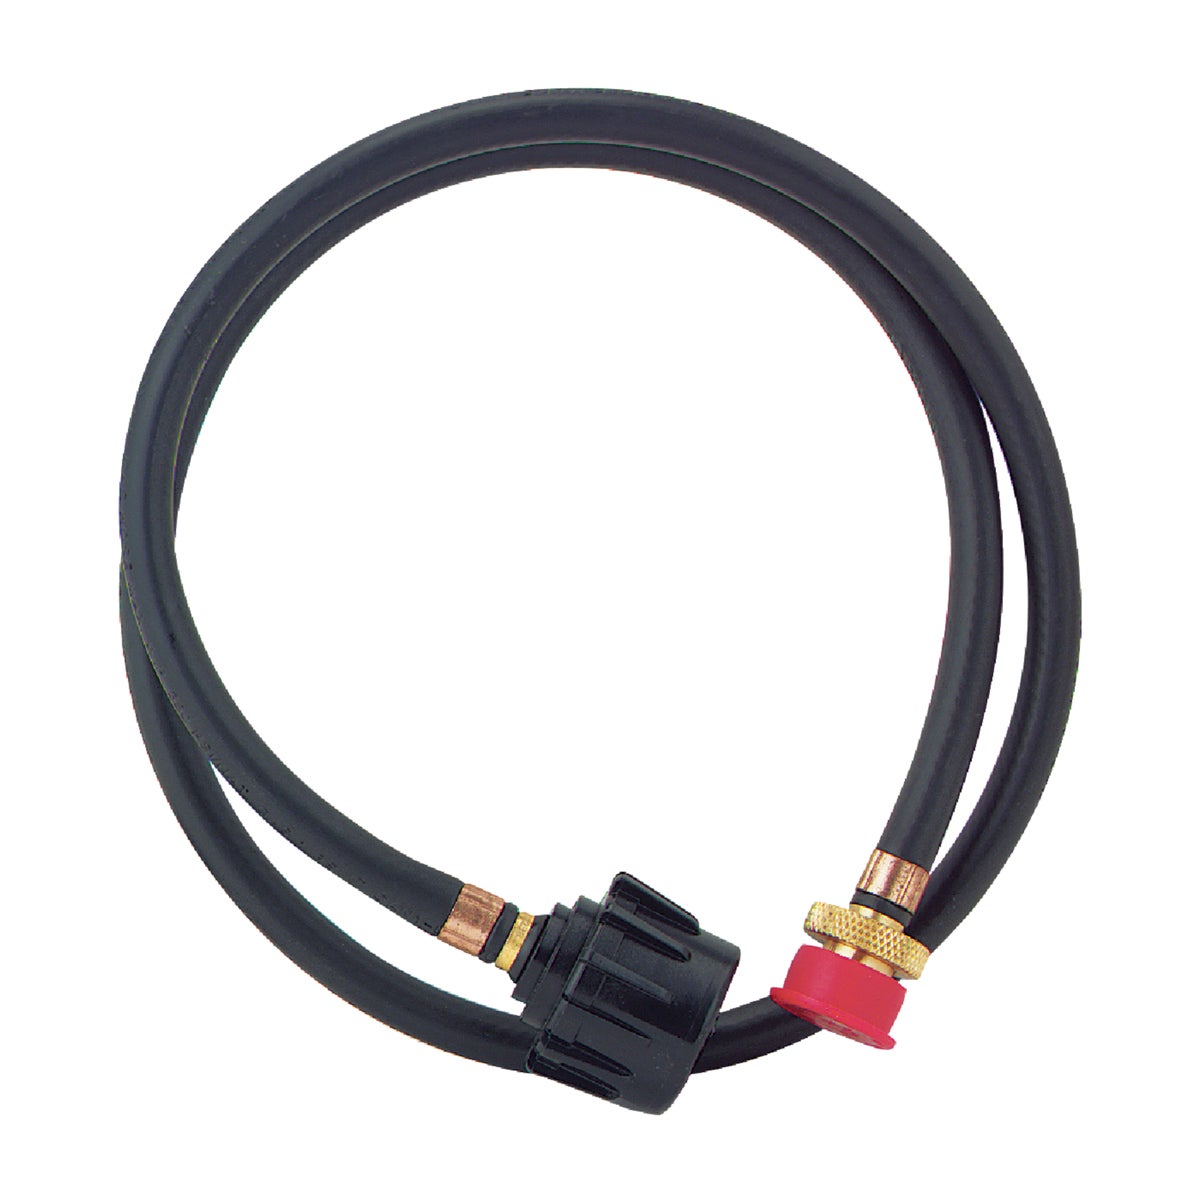 6'WEBR Q LP HOSE ADAPTER - 6501 by Weber